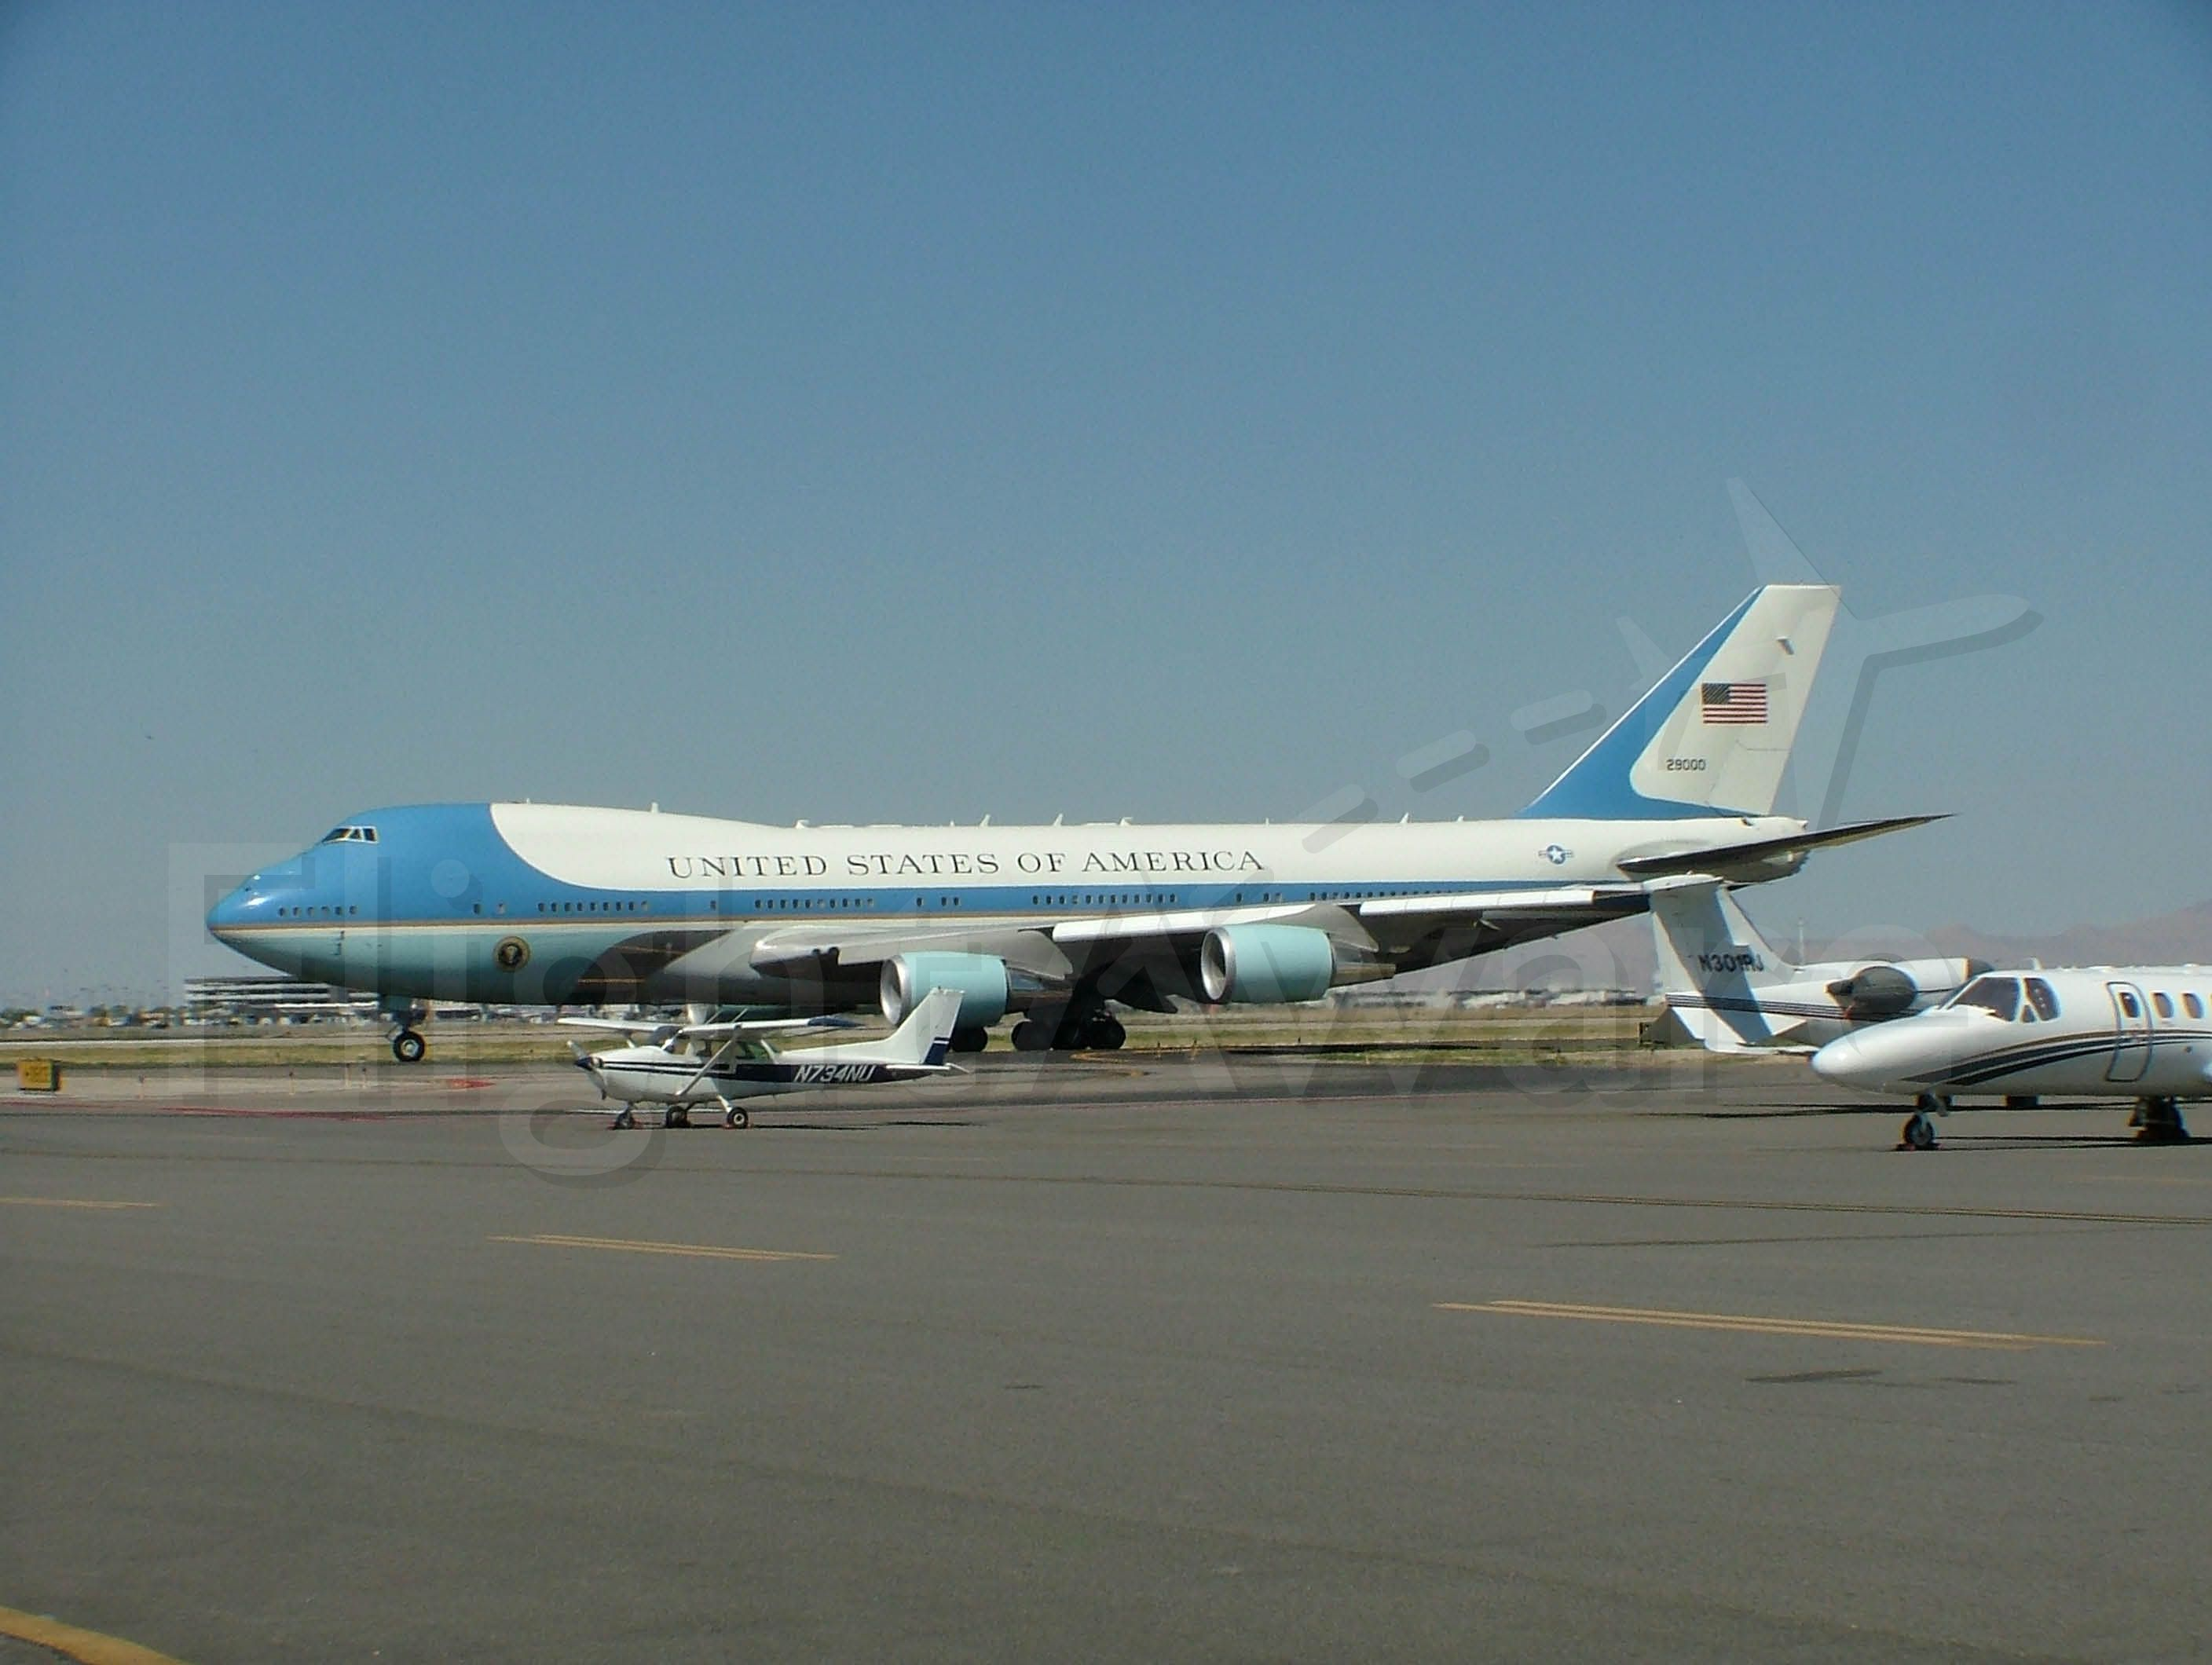 Boeing 747-200 — - Air Force One,  President G.W.Bush visit to Salt Lake City, 2006  I love how the cessna in the foreground is dwarfed by the size of AF-1 even considering it is probably 200 feet closer to the camera.